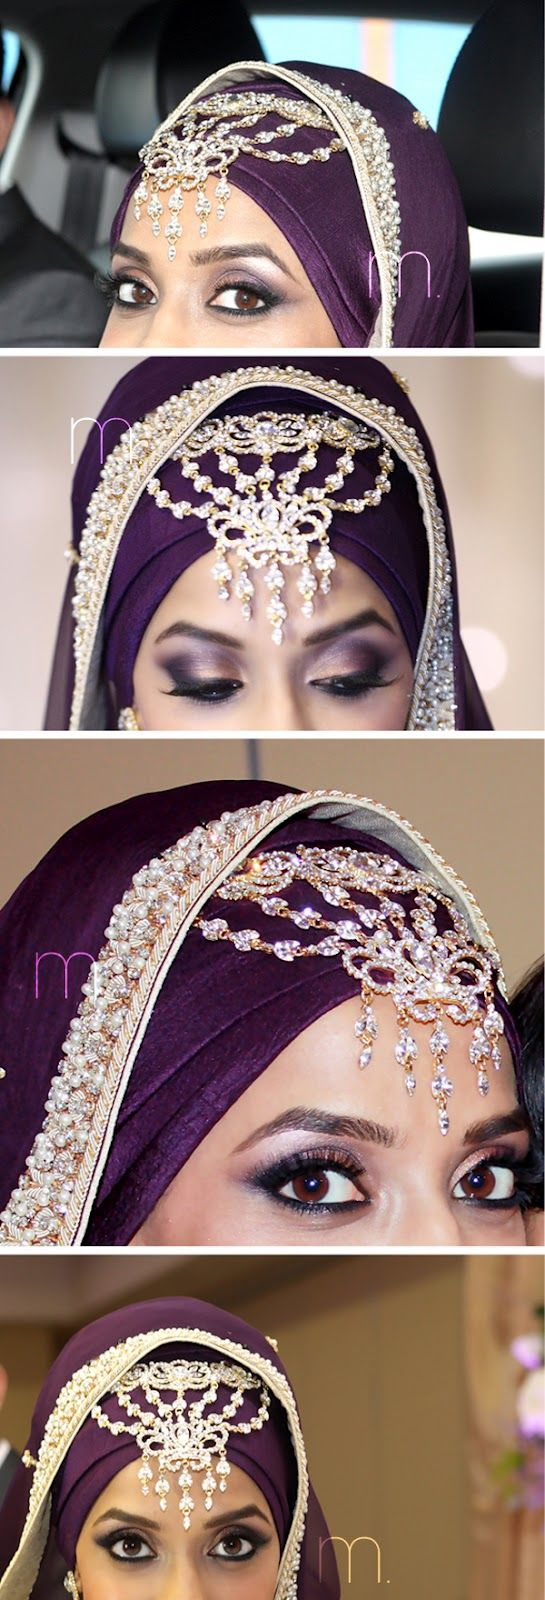 I LOVE THIS HIJAB!! and the headpiece is cute too :)